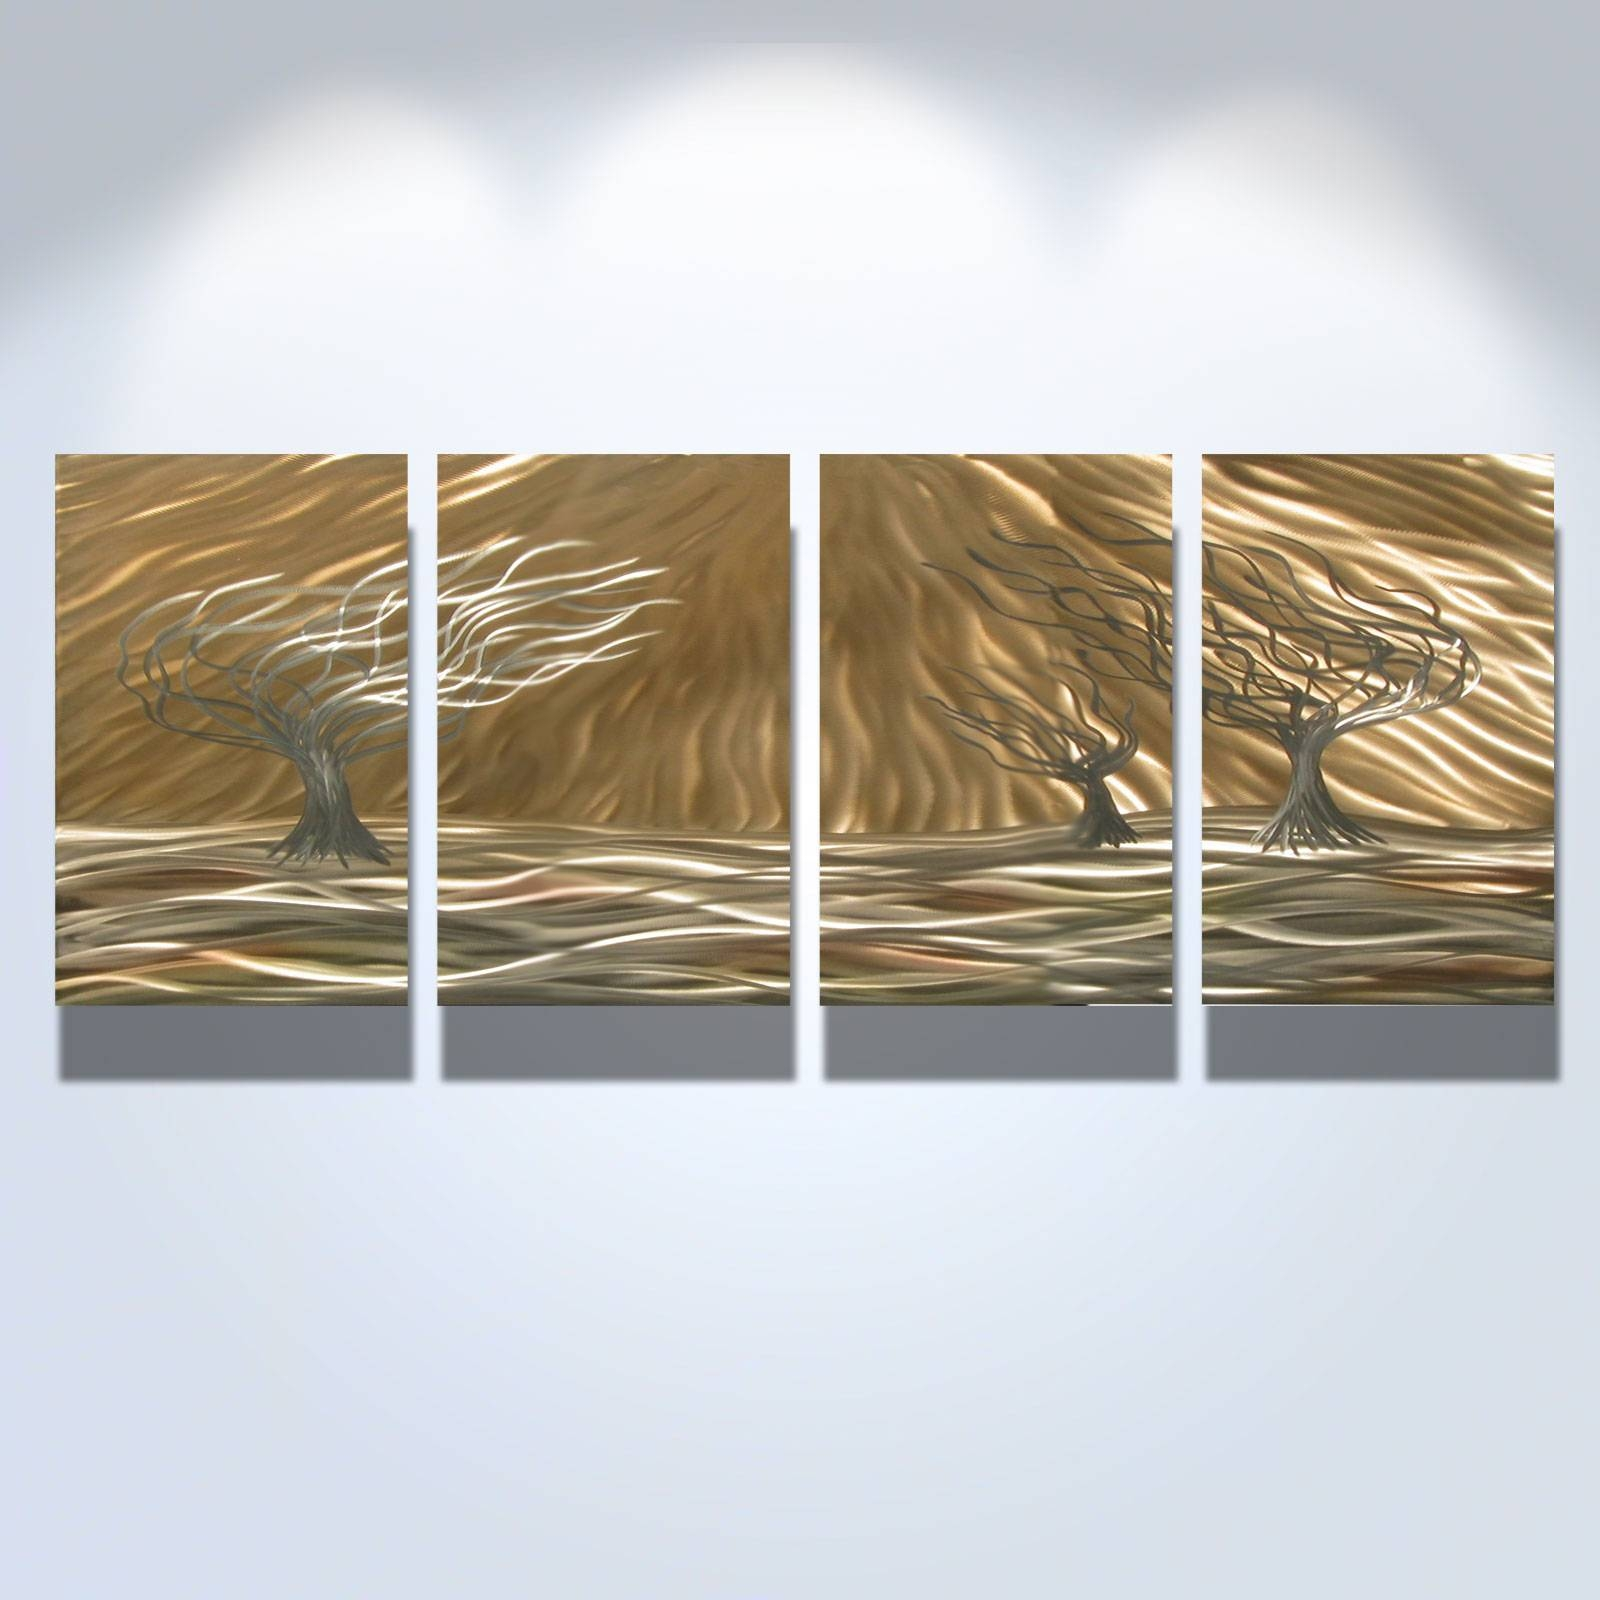 3 Trees 4 Panel – Abstract Metal Wall Art Contemporary Modern In Most Popular Modern Abstract Metal Wall Art (View 2 of 20)